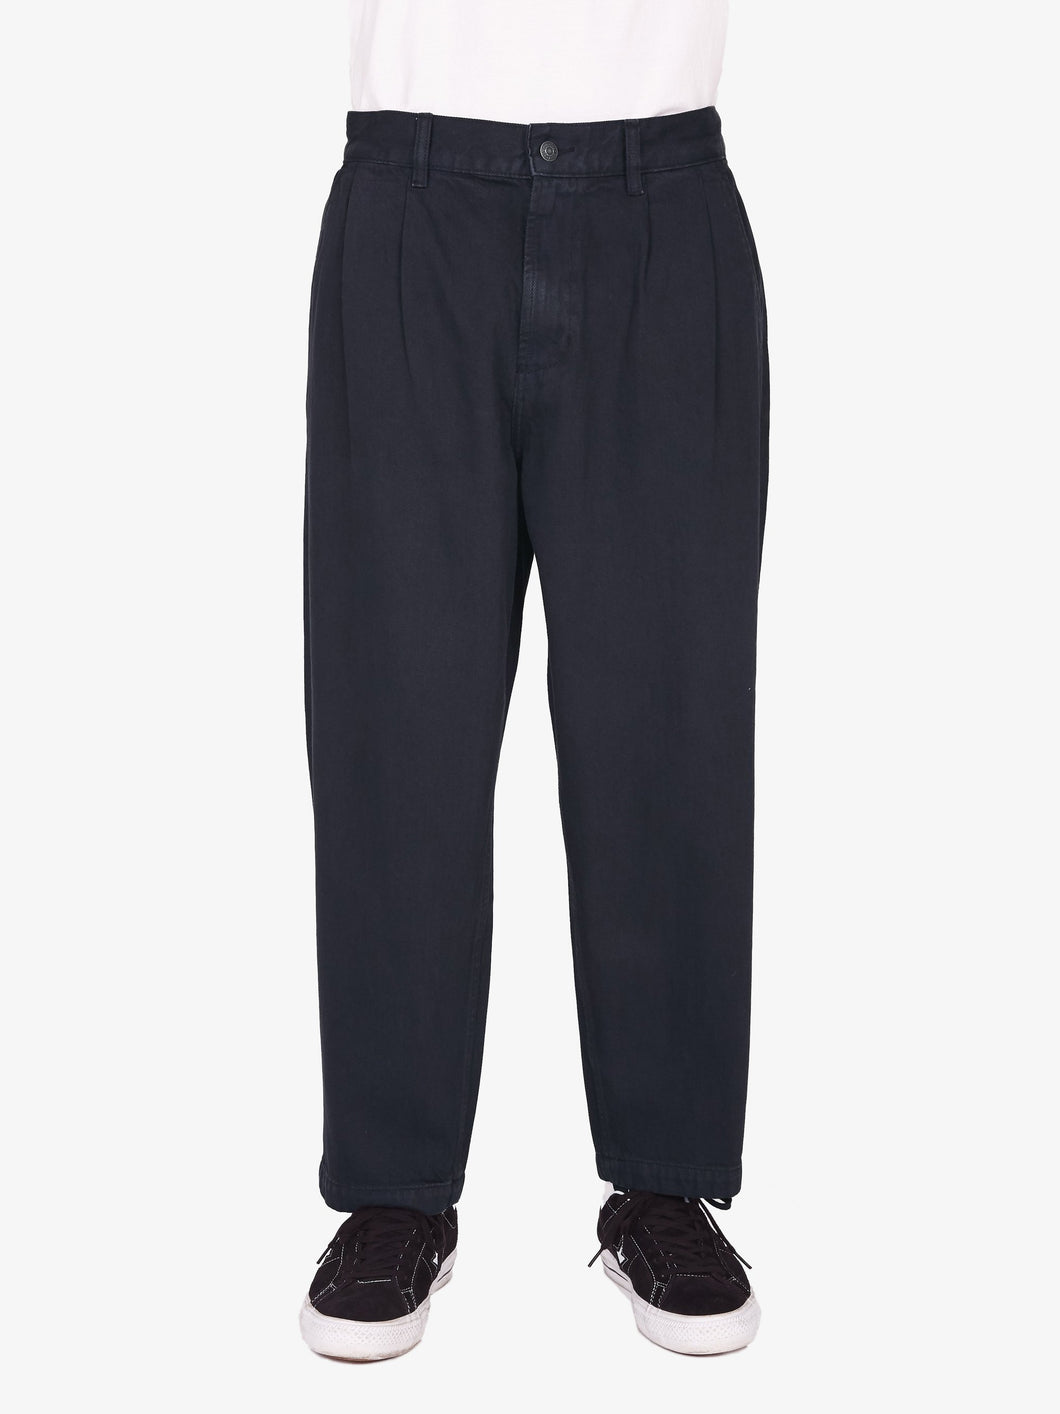 OBEY FUBAR PLEATED DENIM PANT // DUSTY BLACK